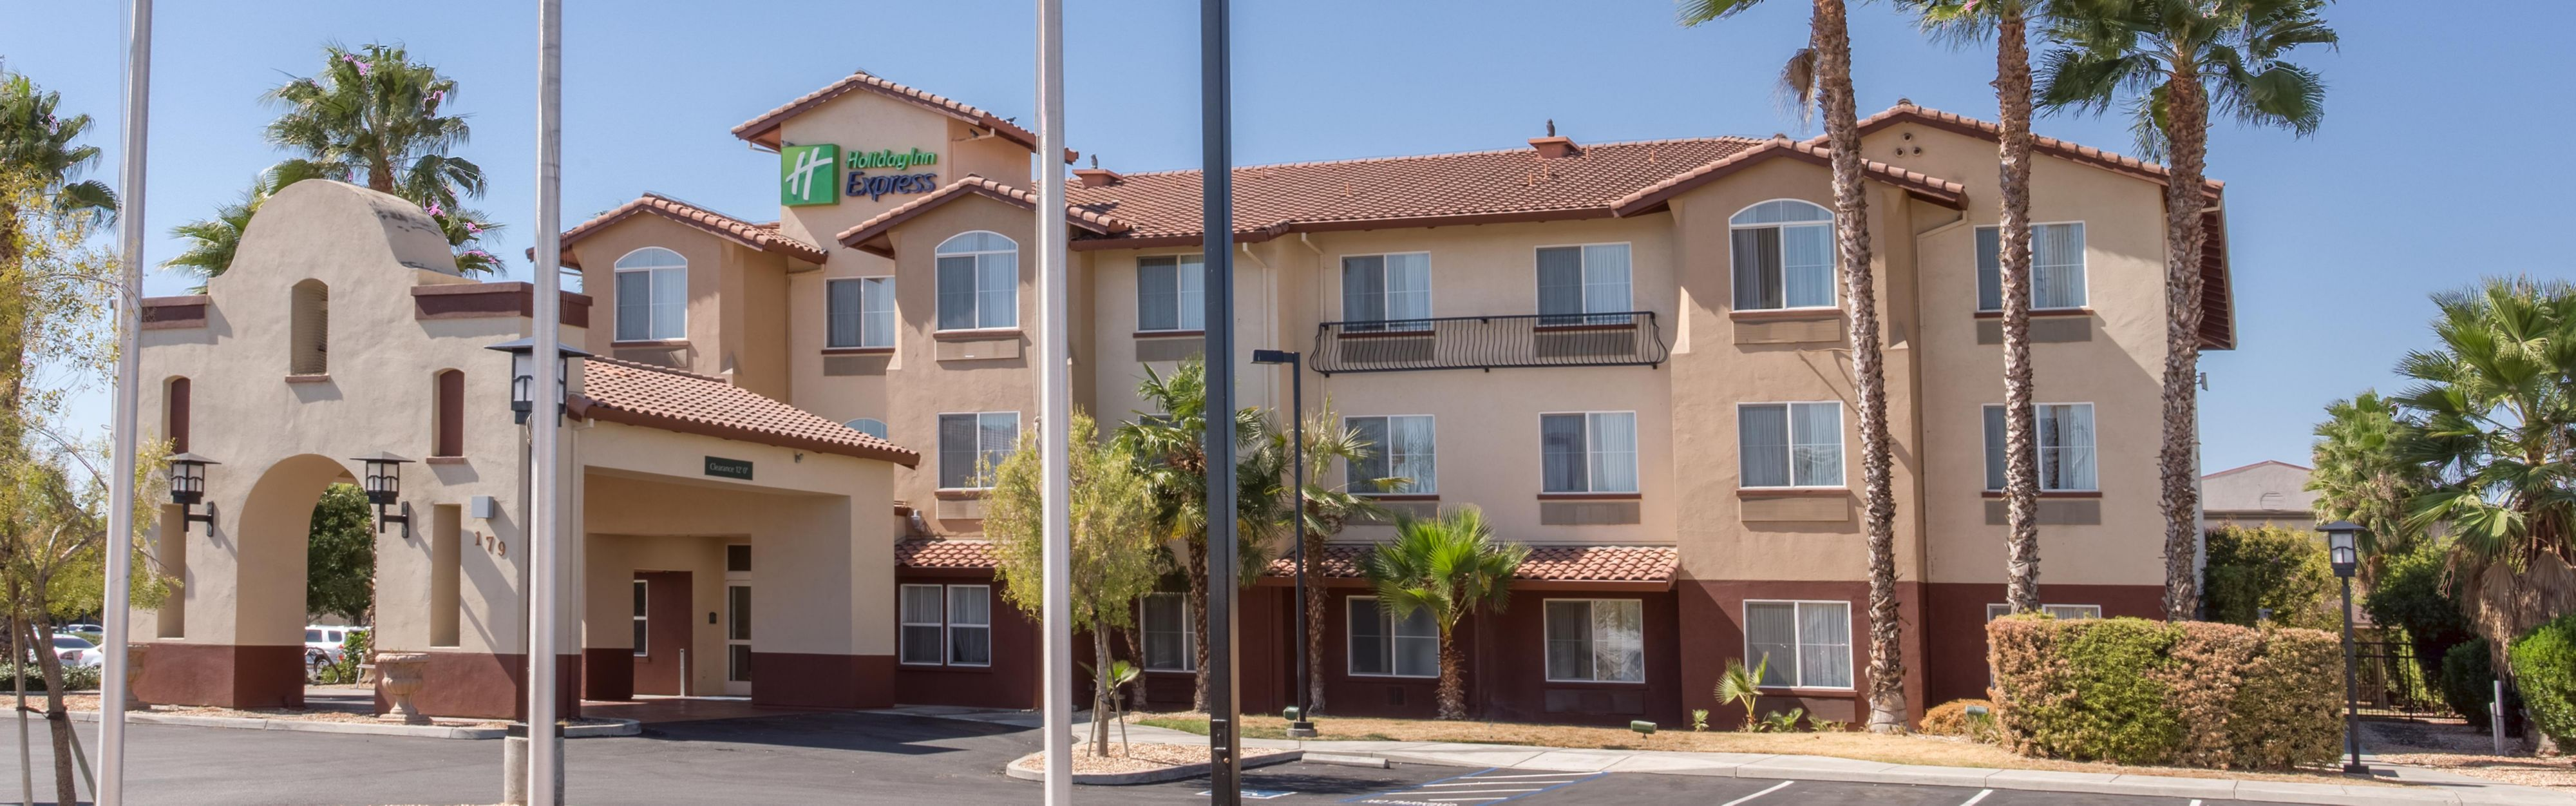 Motels In City Of Commerce Ca